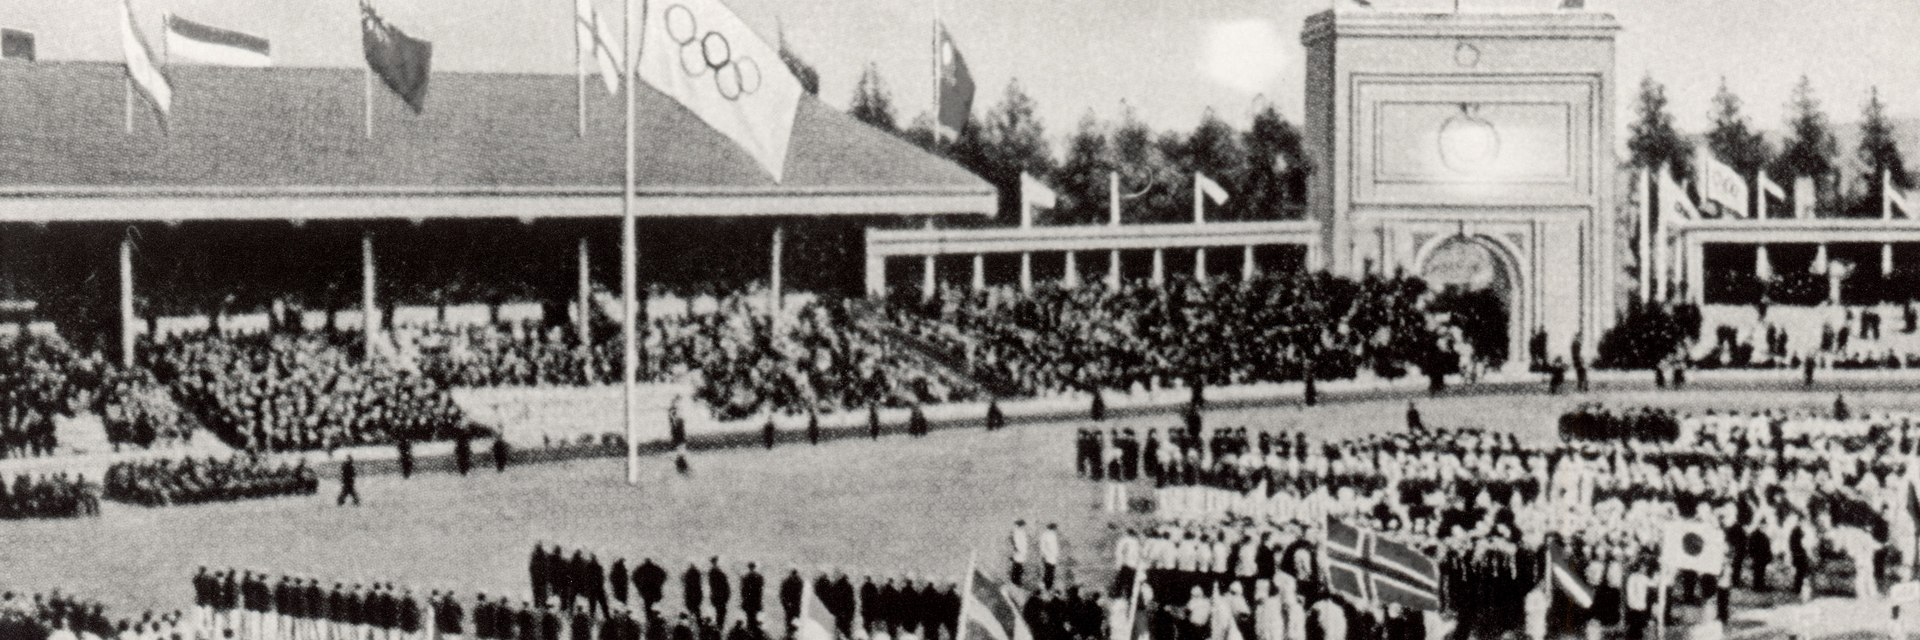 April 20 - The 1920 Summer Olympics open in Antwerp, Belgium. The Olympic symbols of five interlocking rings and the associated flag are first displayed at the games